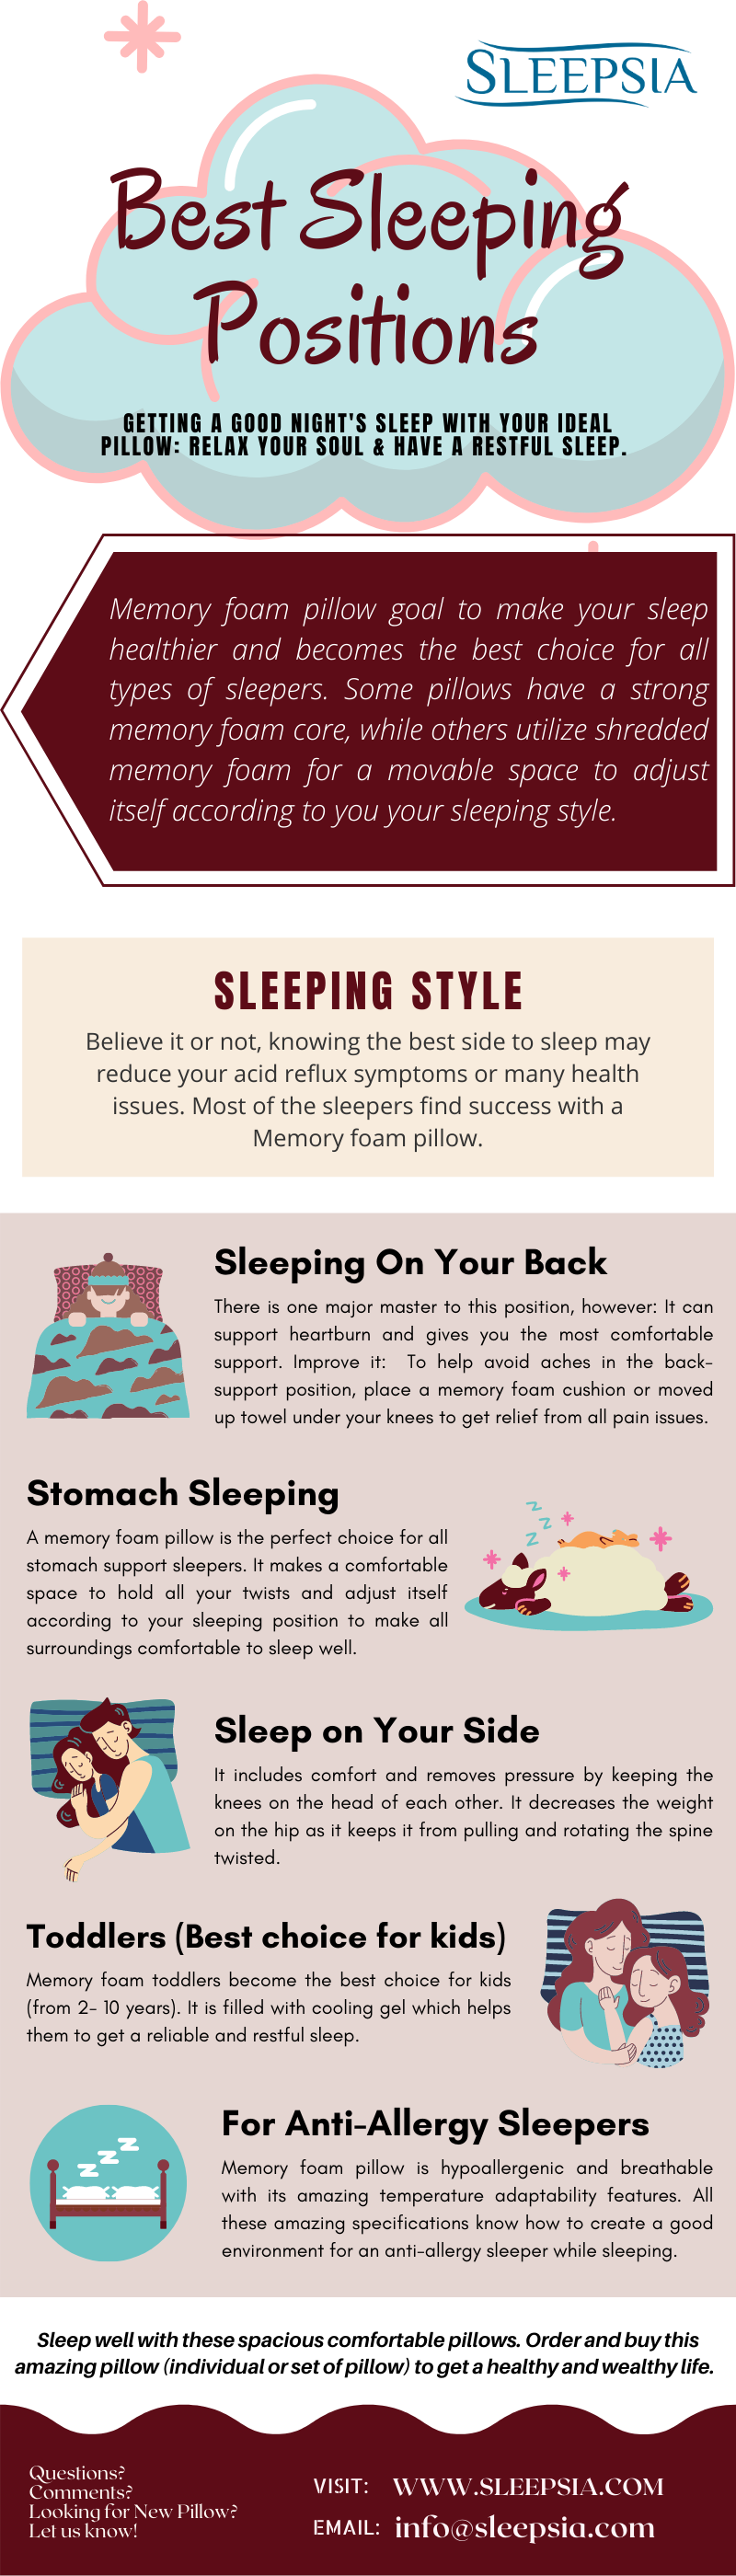 Best Sleeping Positions